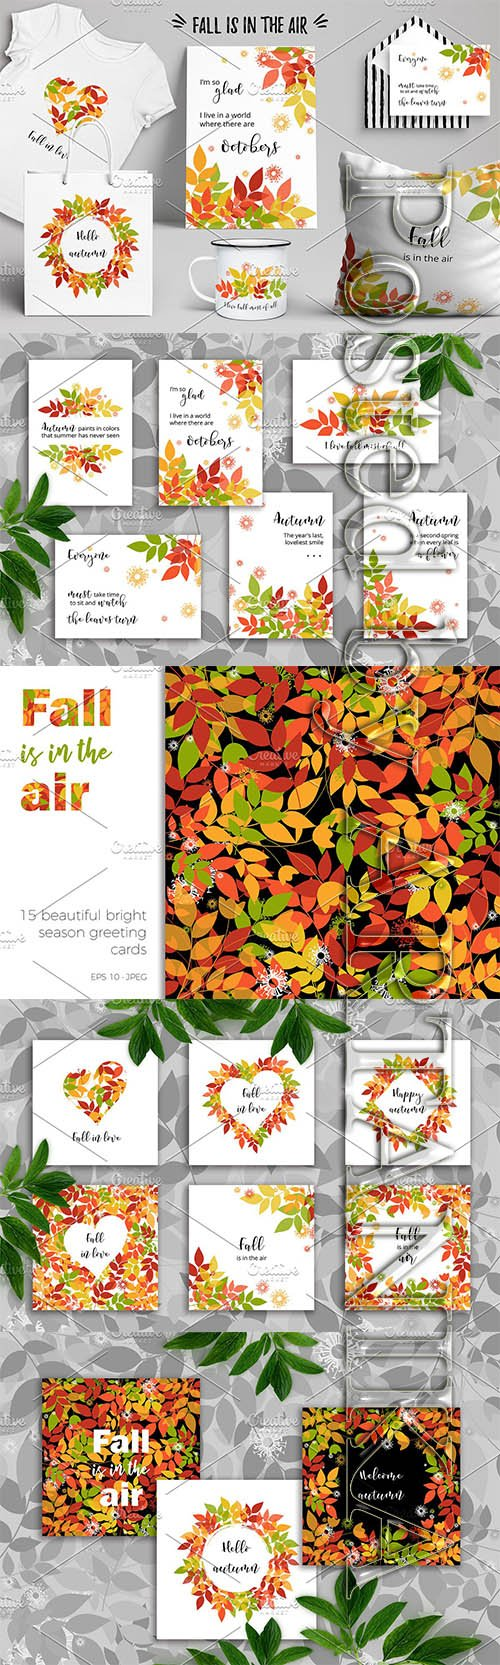 CreativeMarket - Fall is in the air 2246899